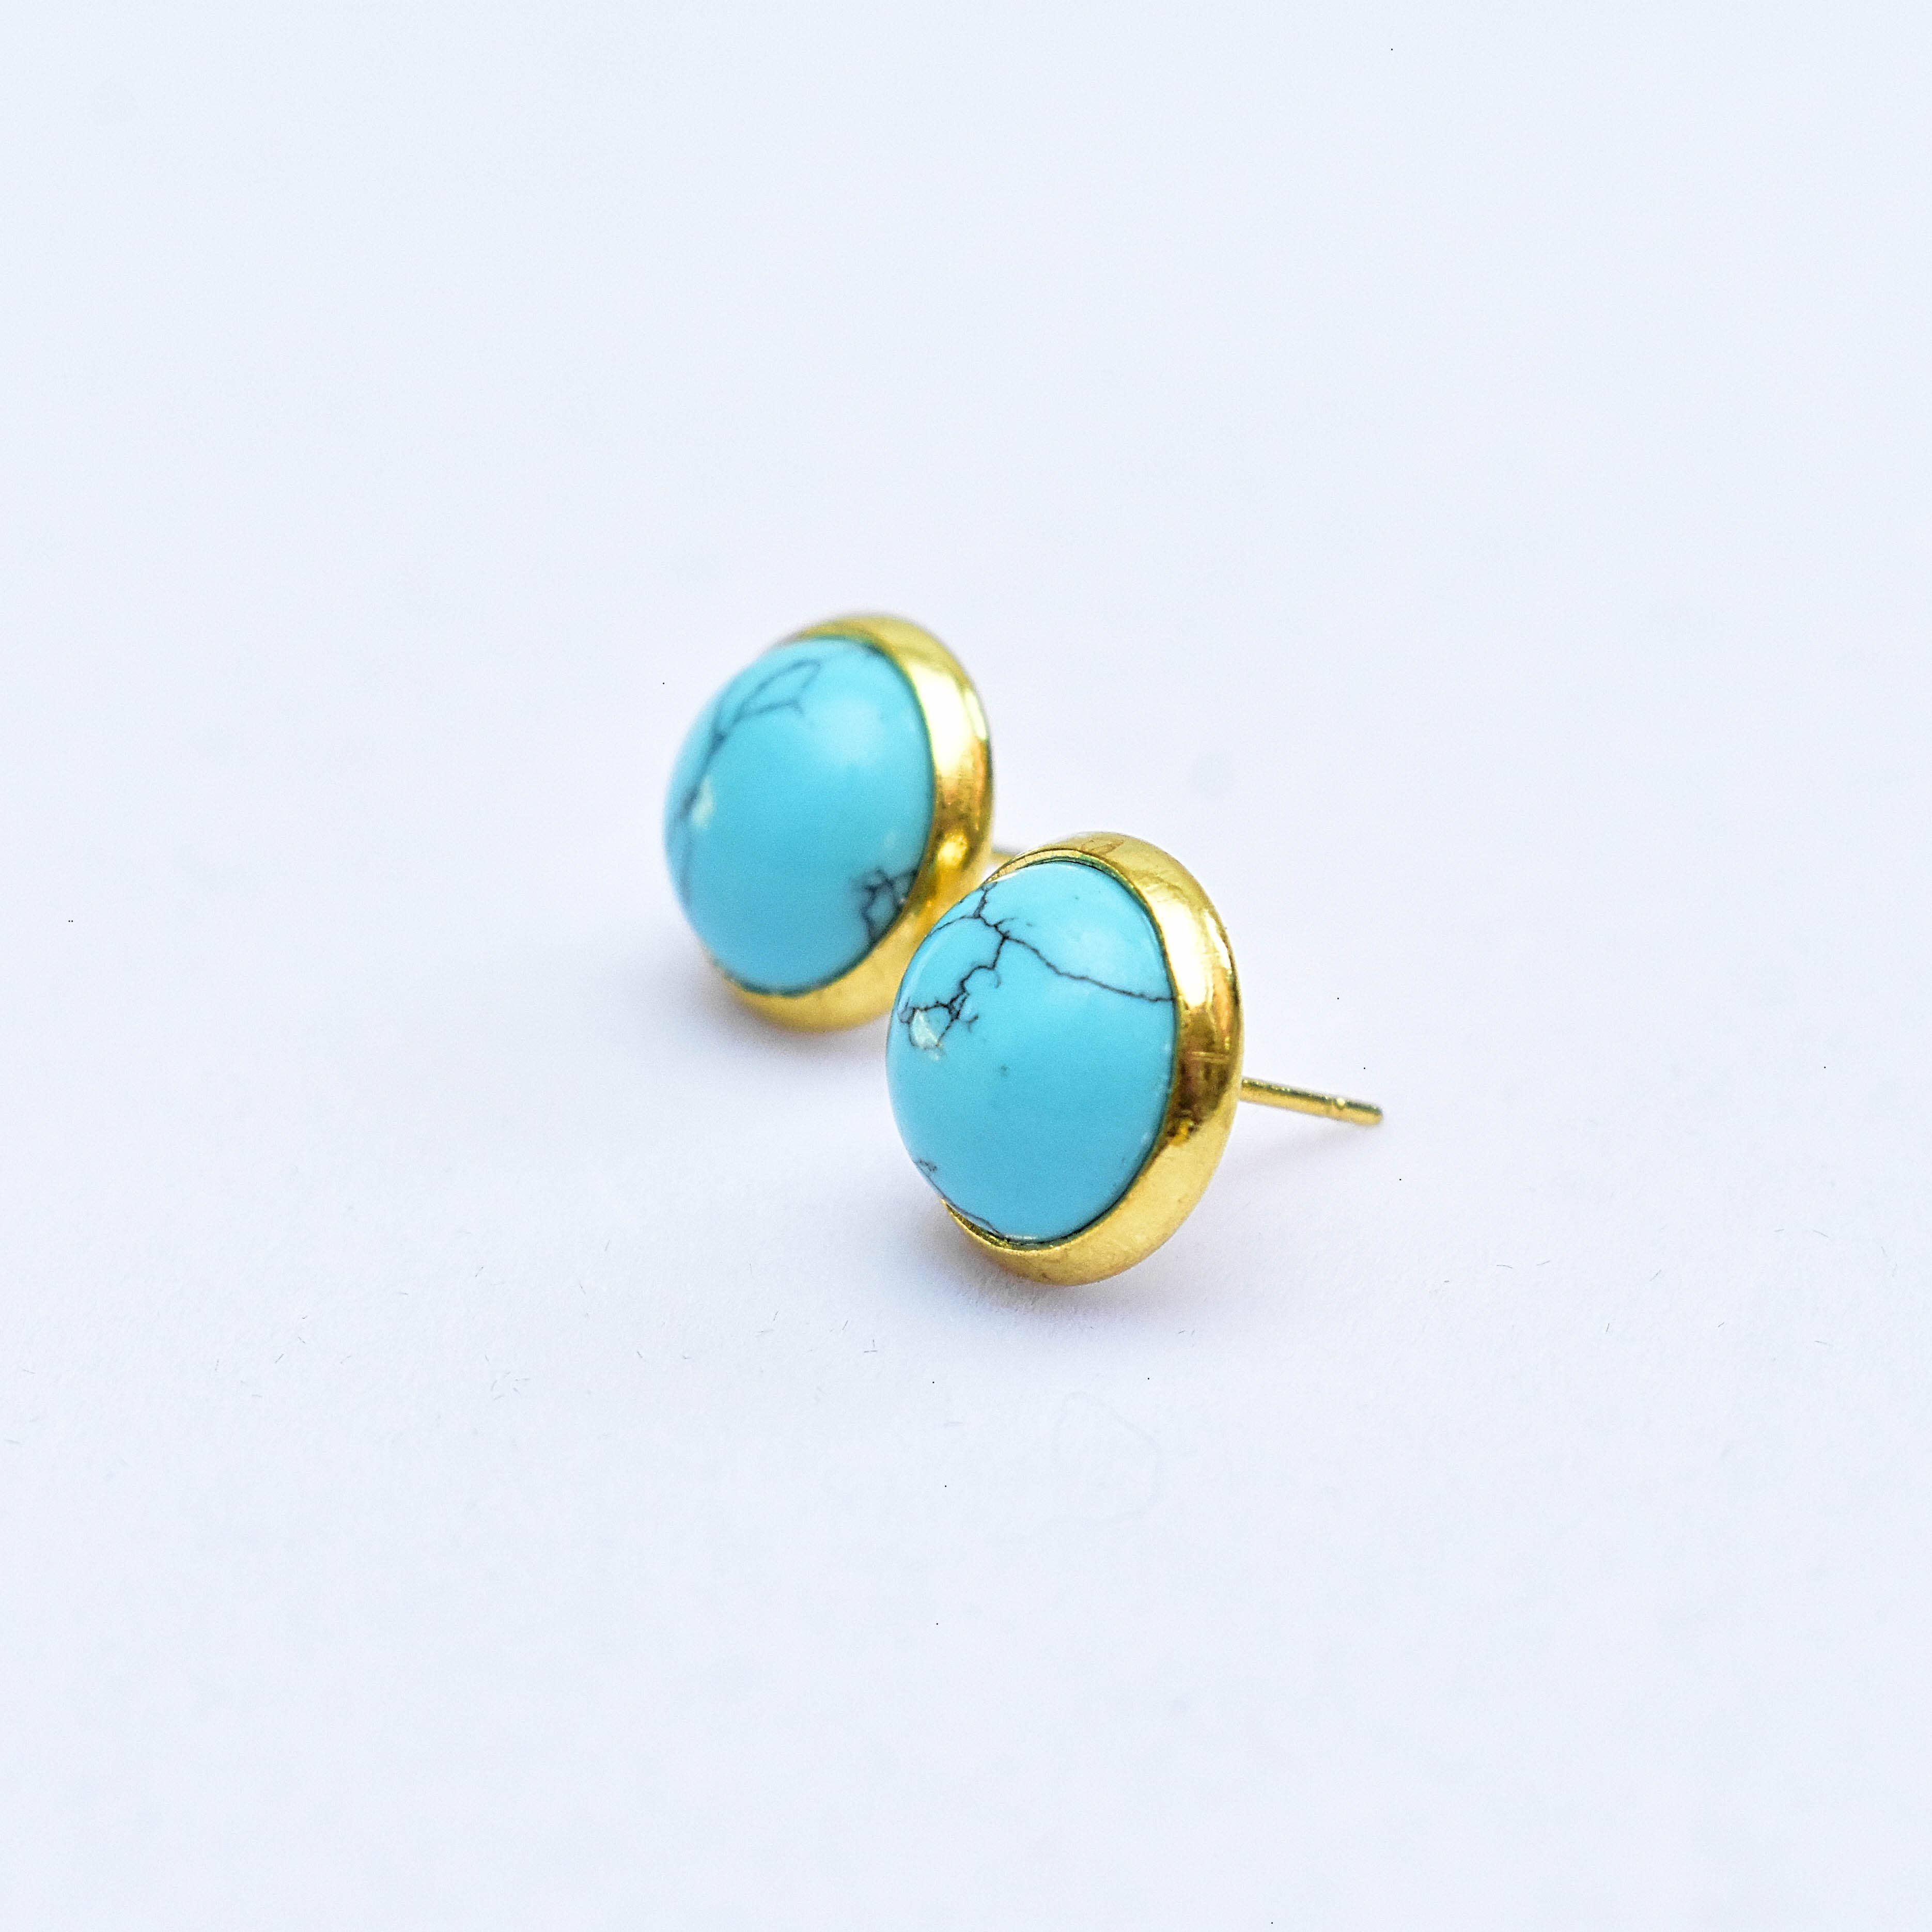 Crescent Moon Earrings with Blue Howlite Stone